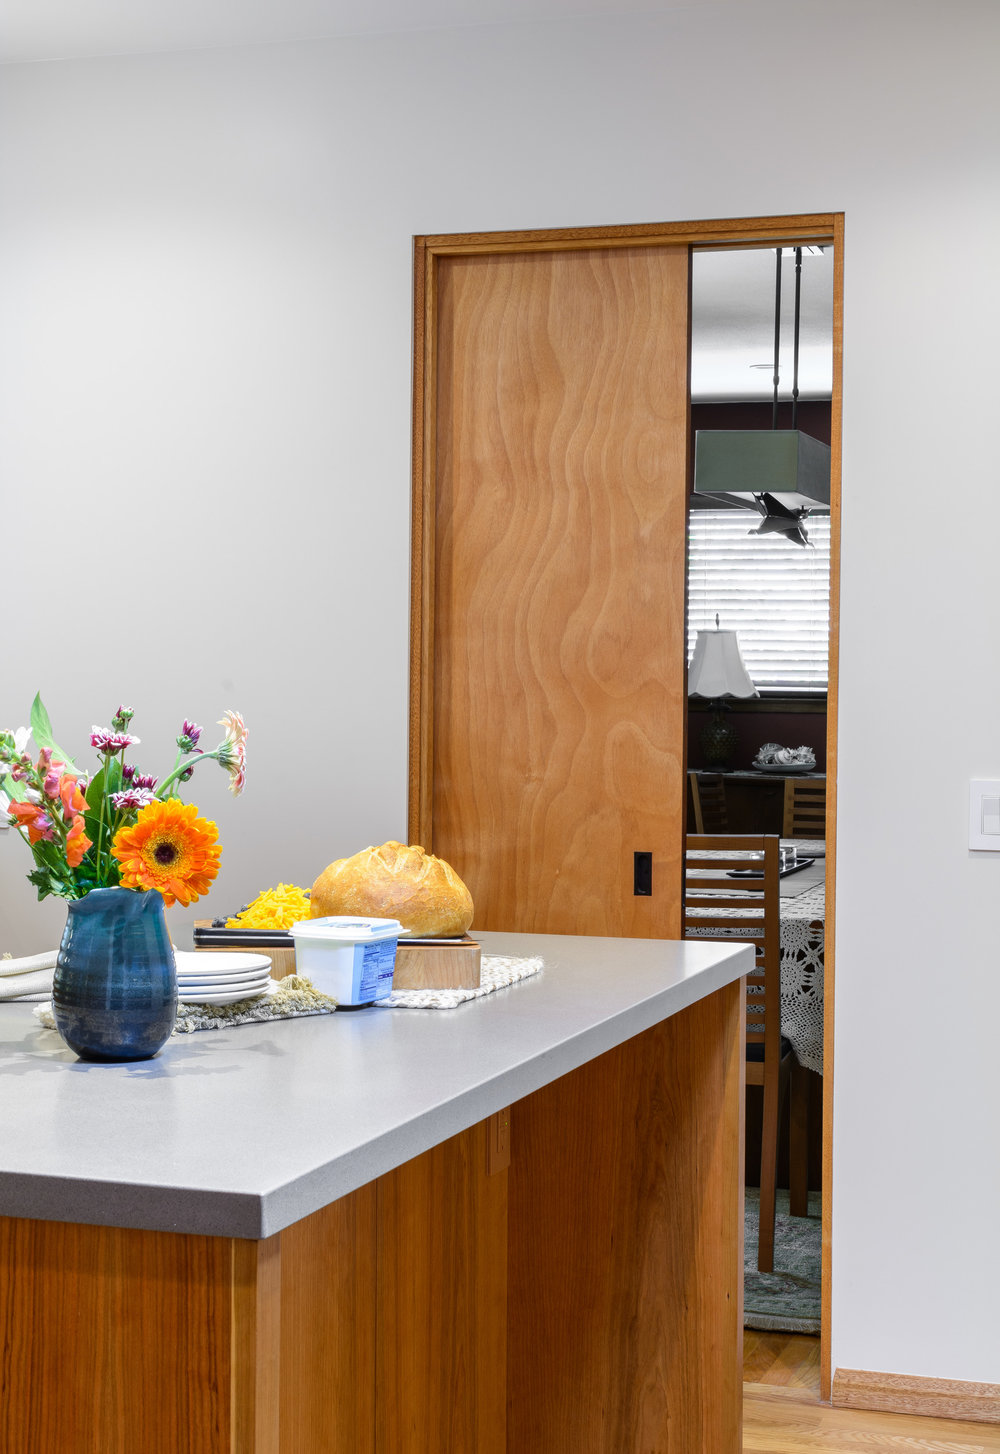 Kitchen pocket door in cherry wood between kitchen island and dining room